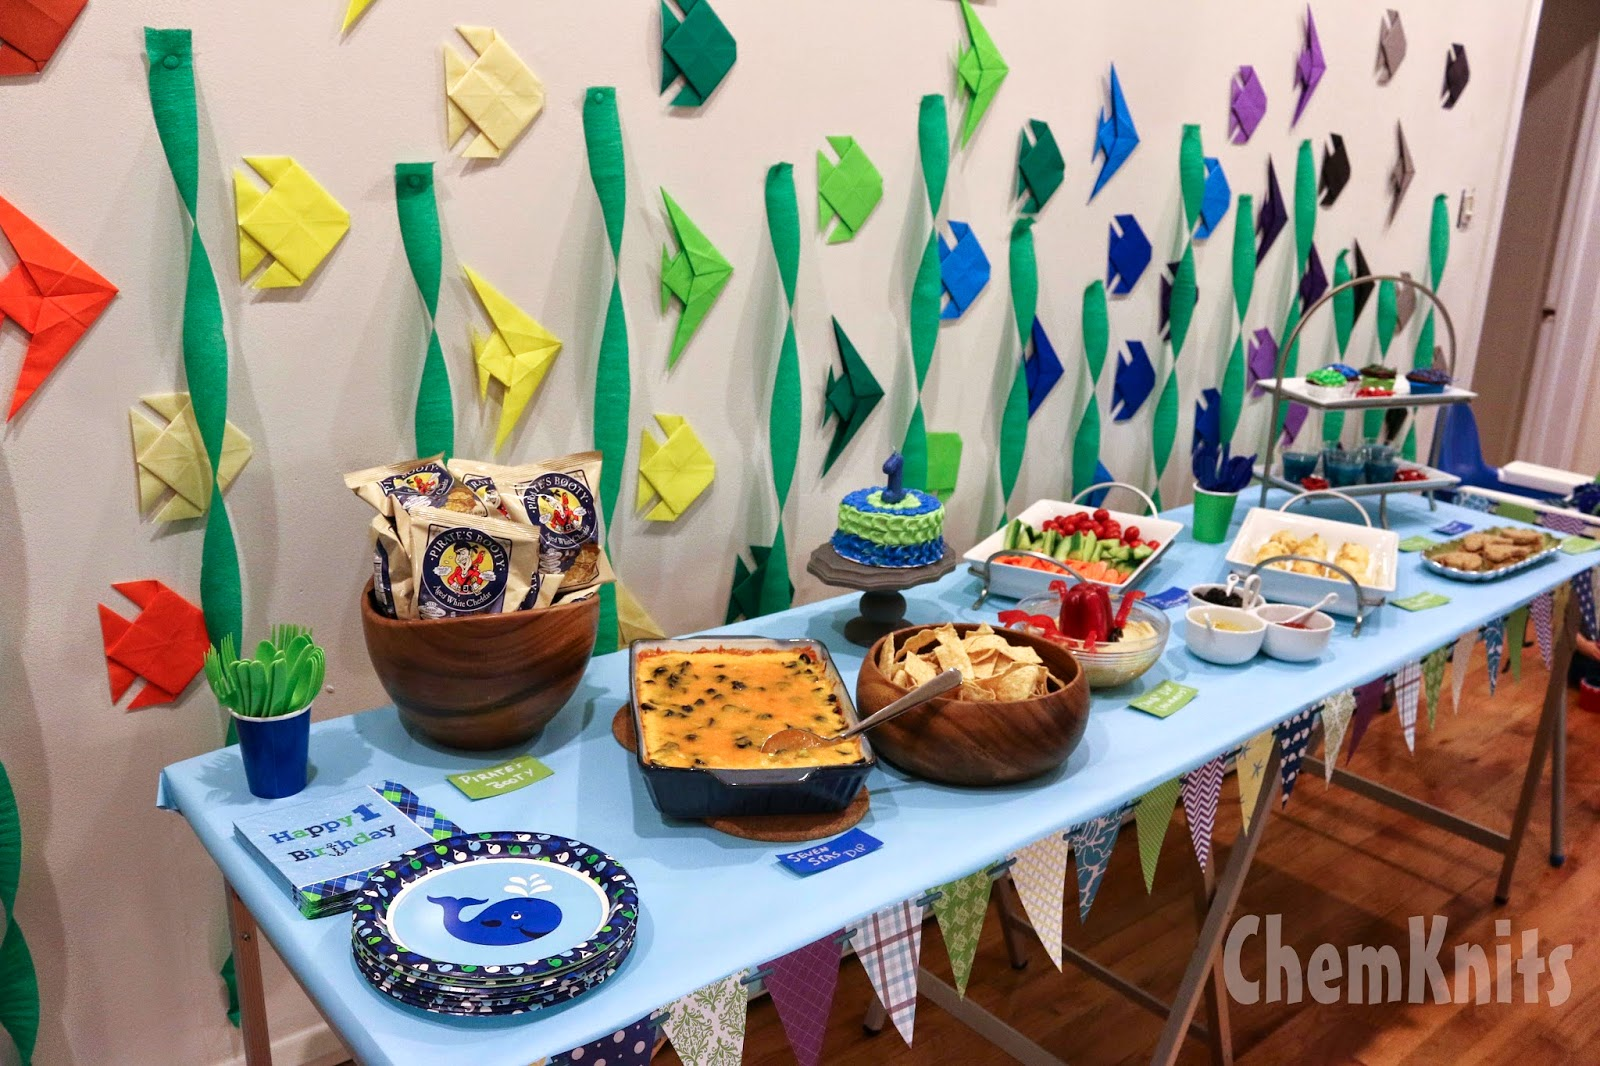 chemknits a whale of a first birthday party